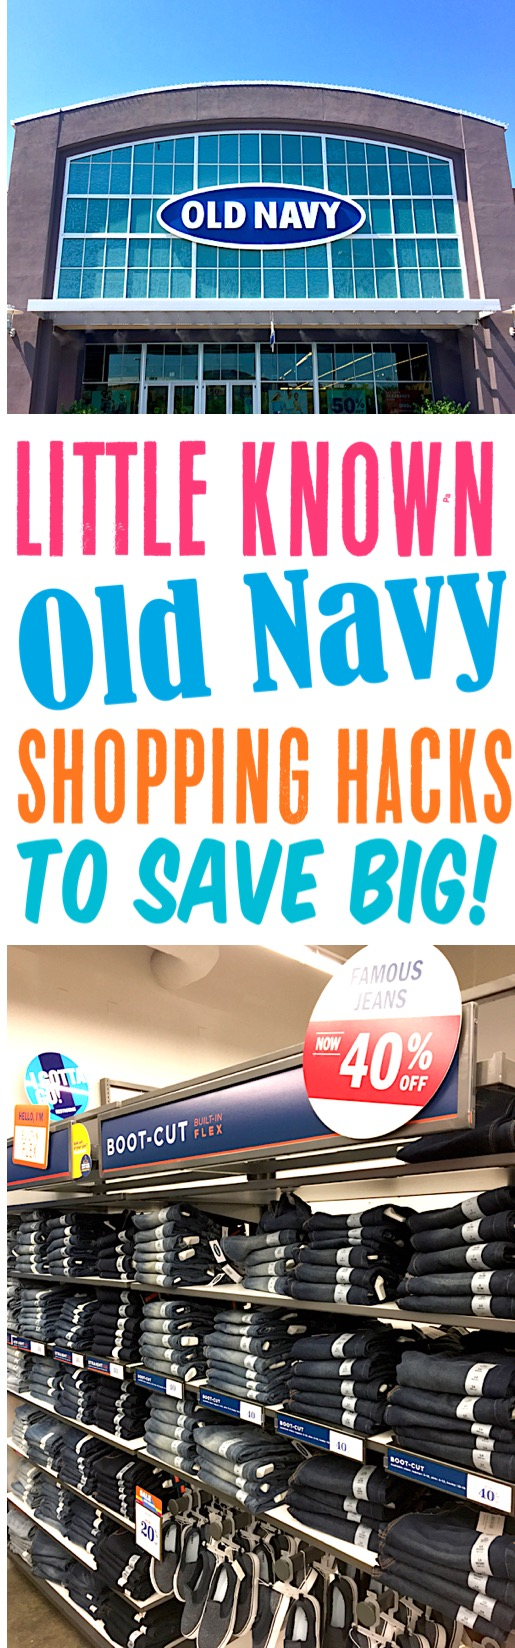 Old Navy Outfits and Shopping Hacks to Save More Money